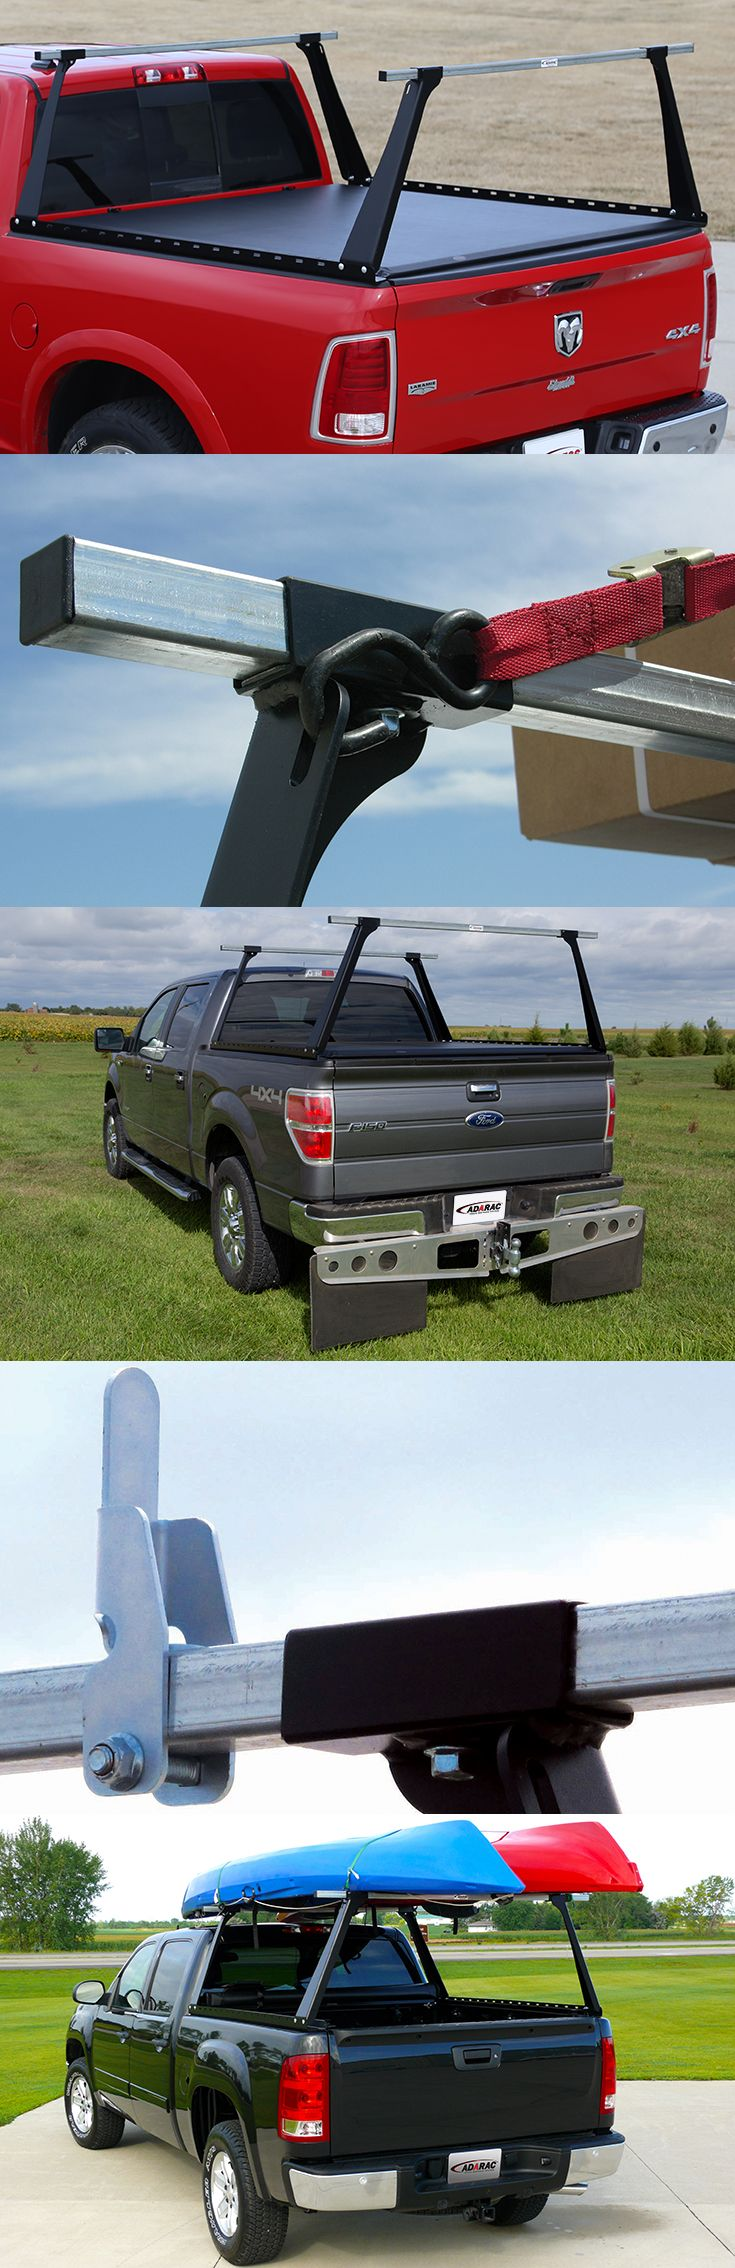 The ADARAC™ Truck Bed Rack works seamlessly with ACCESS® Roll-Up Covers and can carry loads as big as 500 pounds. The built-in tie-down locations make it simple to secure a load, and available cargo dividers help you fit more on the rack.